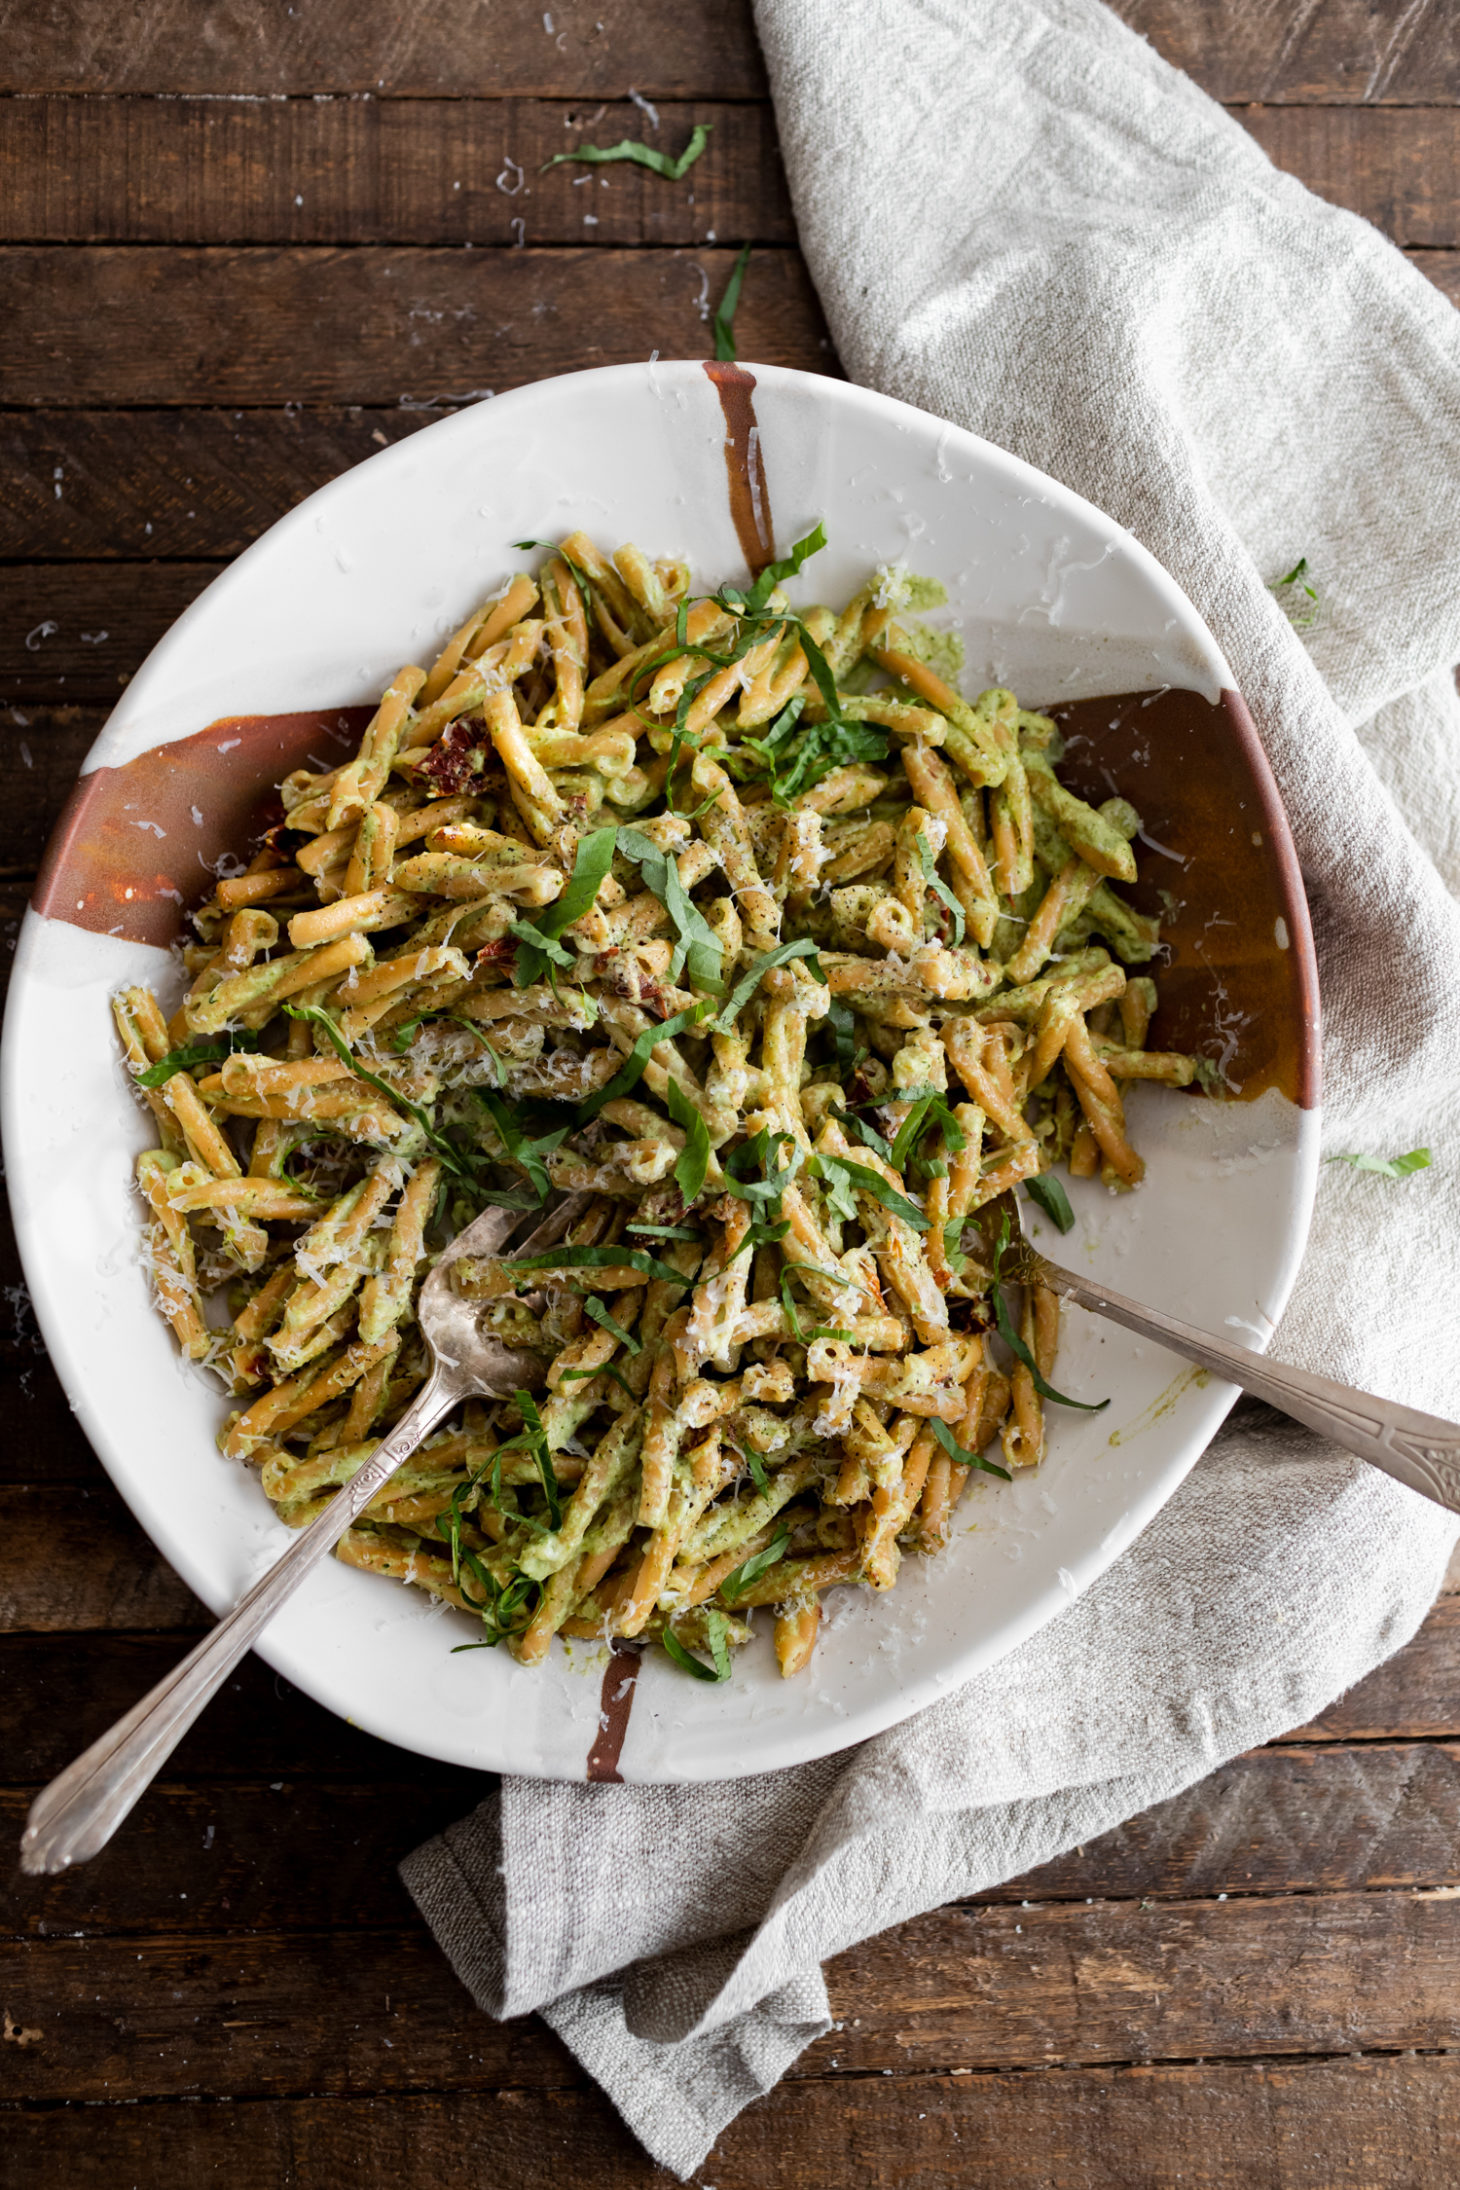 Photograph of a full, large white bowl of pasta tossed with a broccoli pesto.